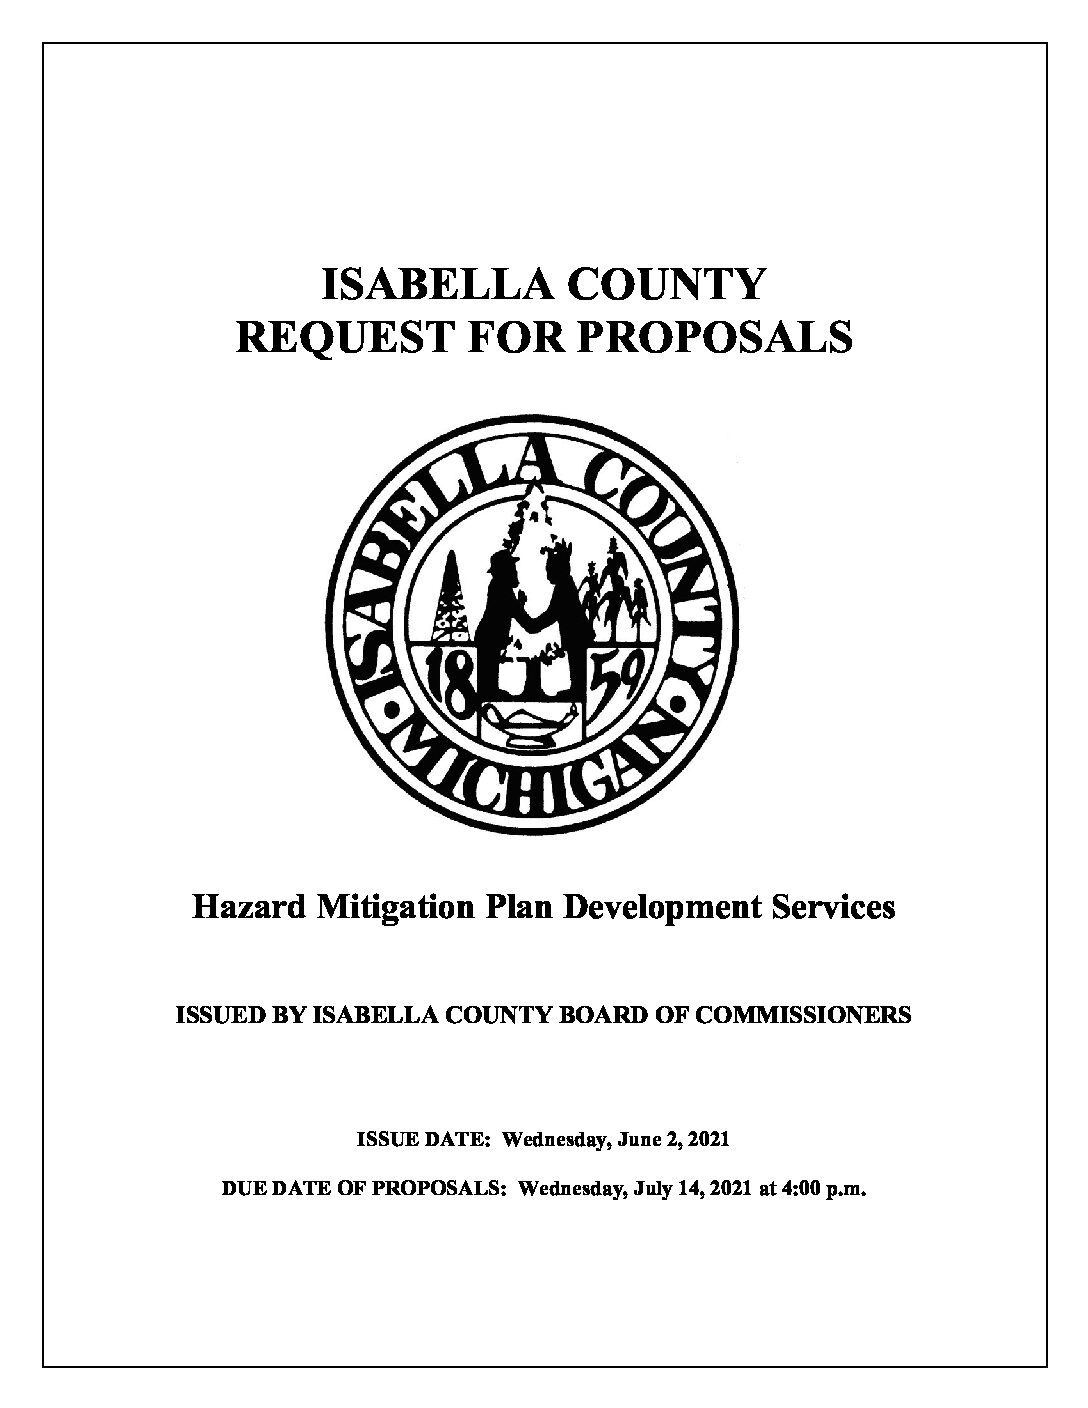 preview image of first page Hazard Mitigation Plan Development Services RFP